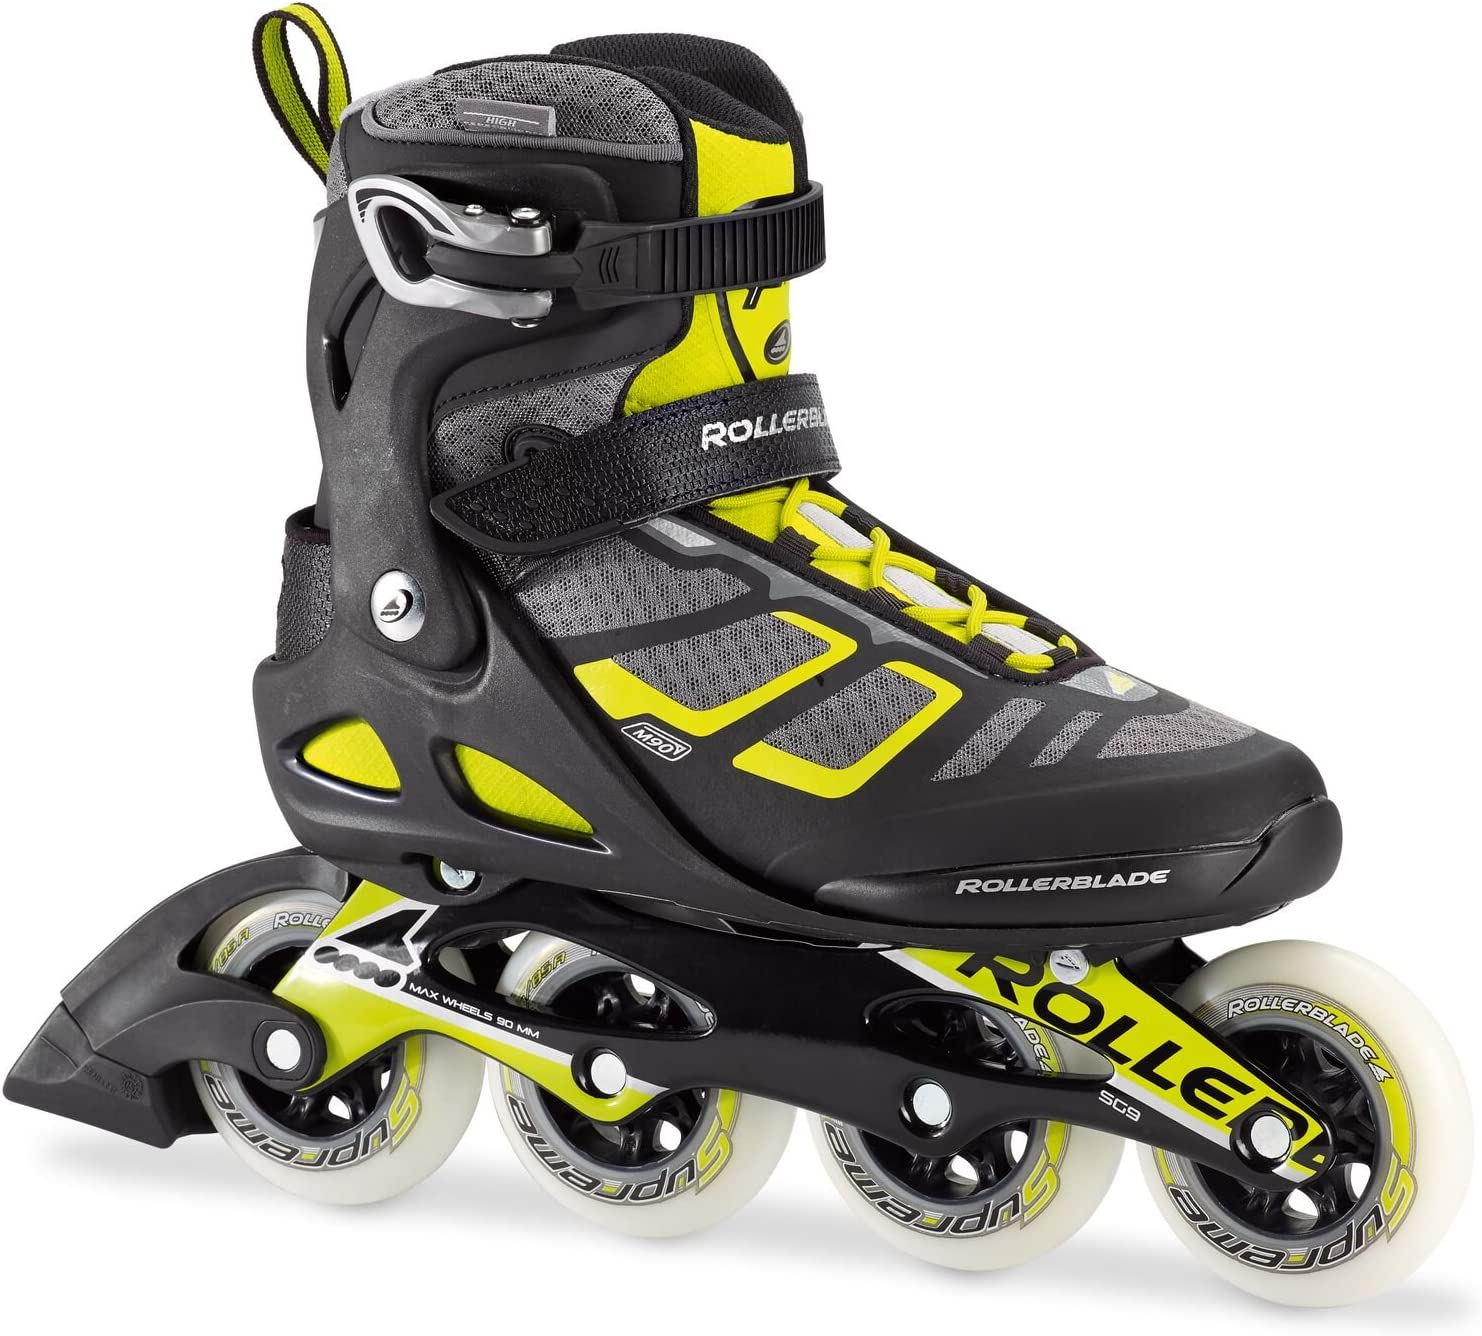 Rollerblade Macroblade 90 Alu Men s Adult Fitness Inline Skate, Black and Lime, High Performance Inline Skates